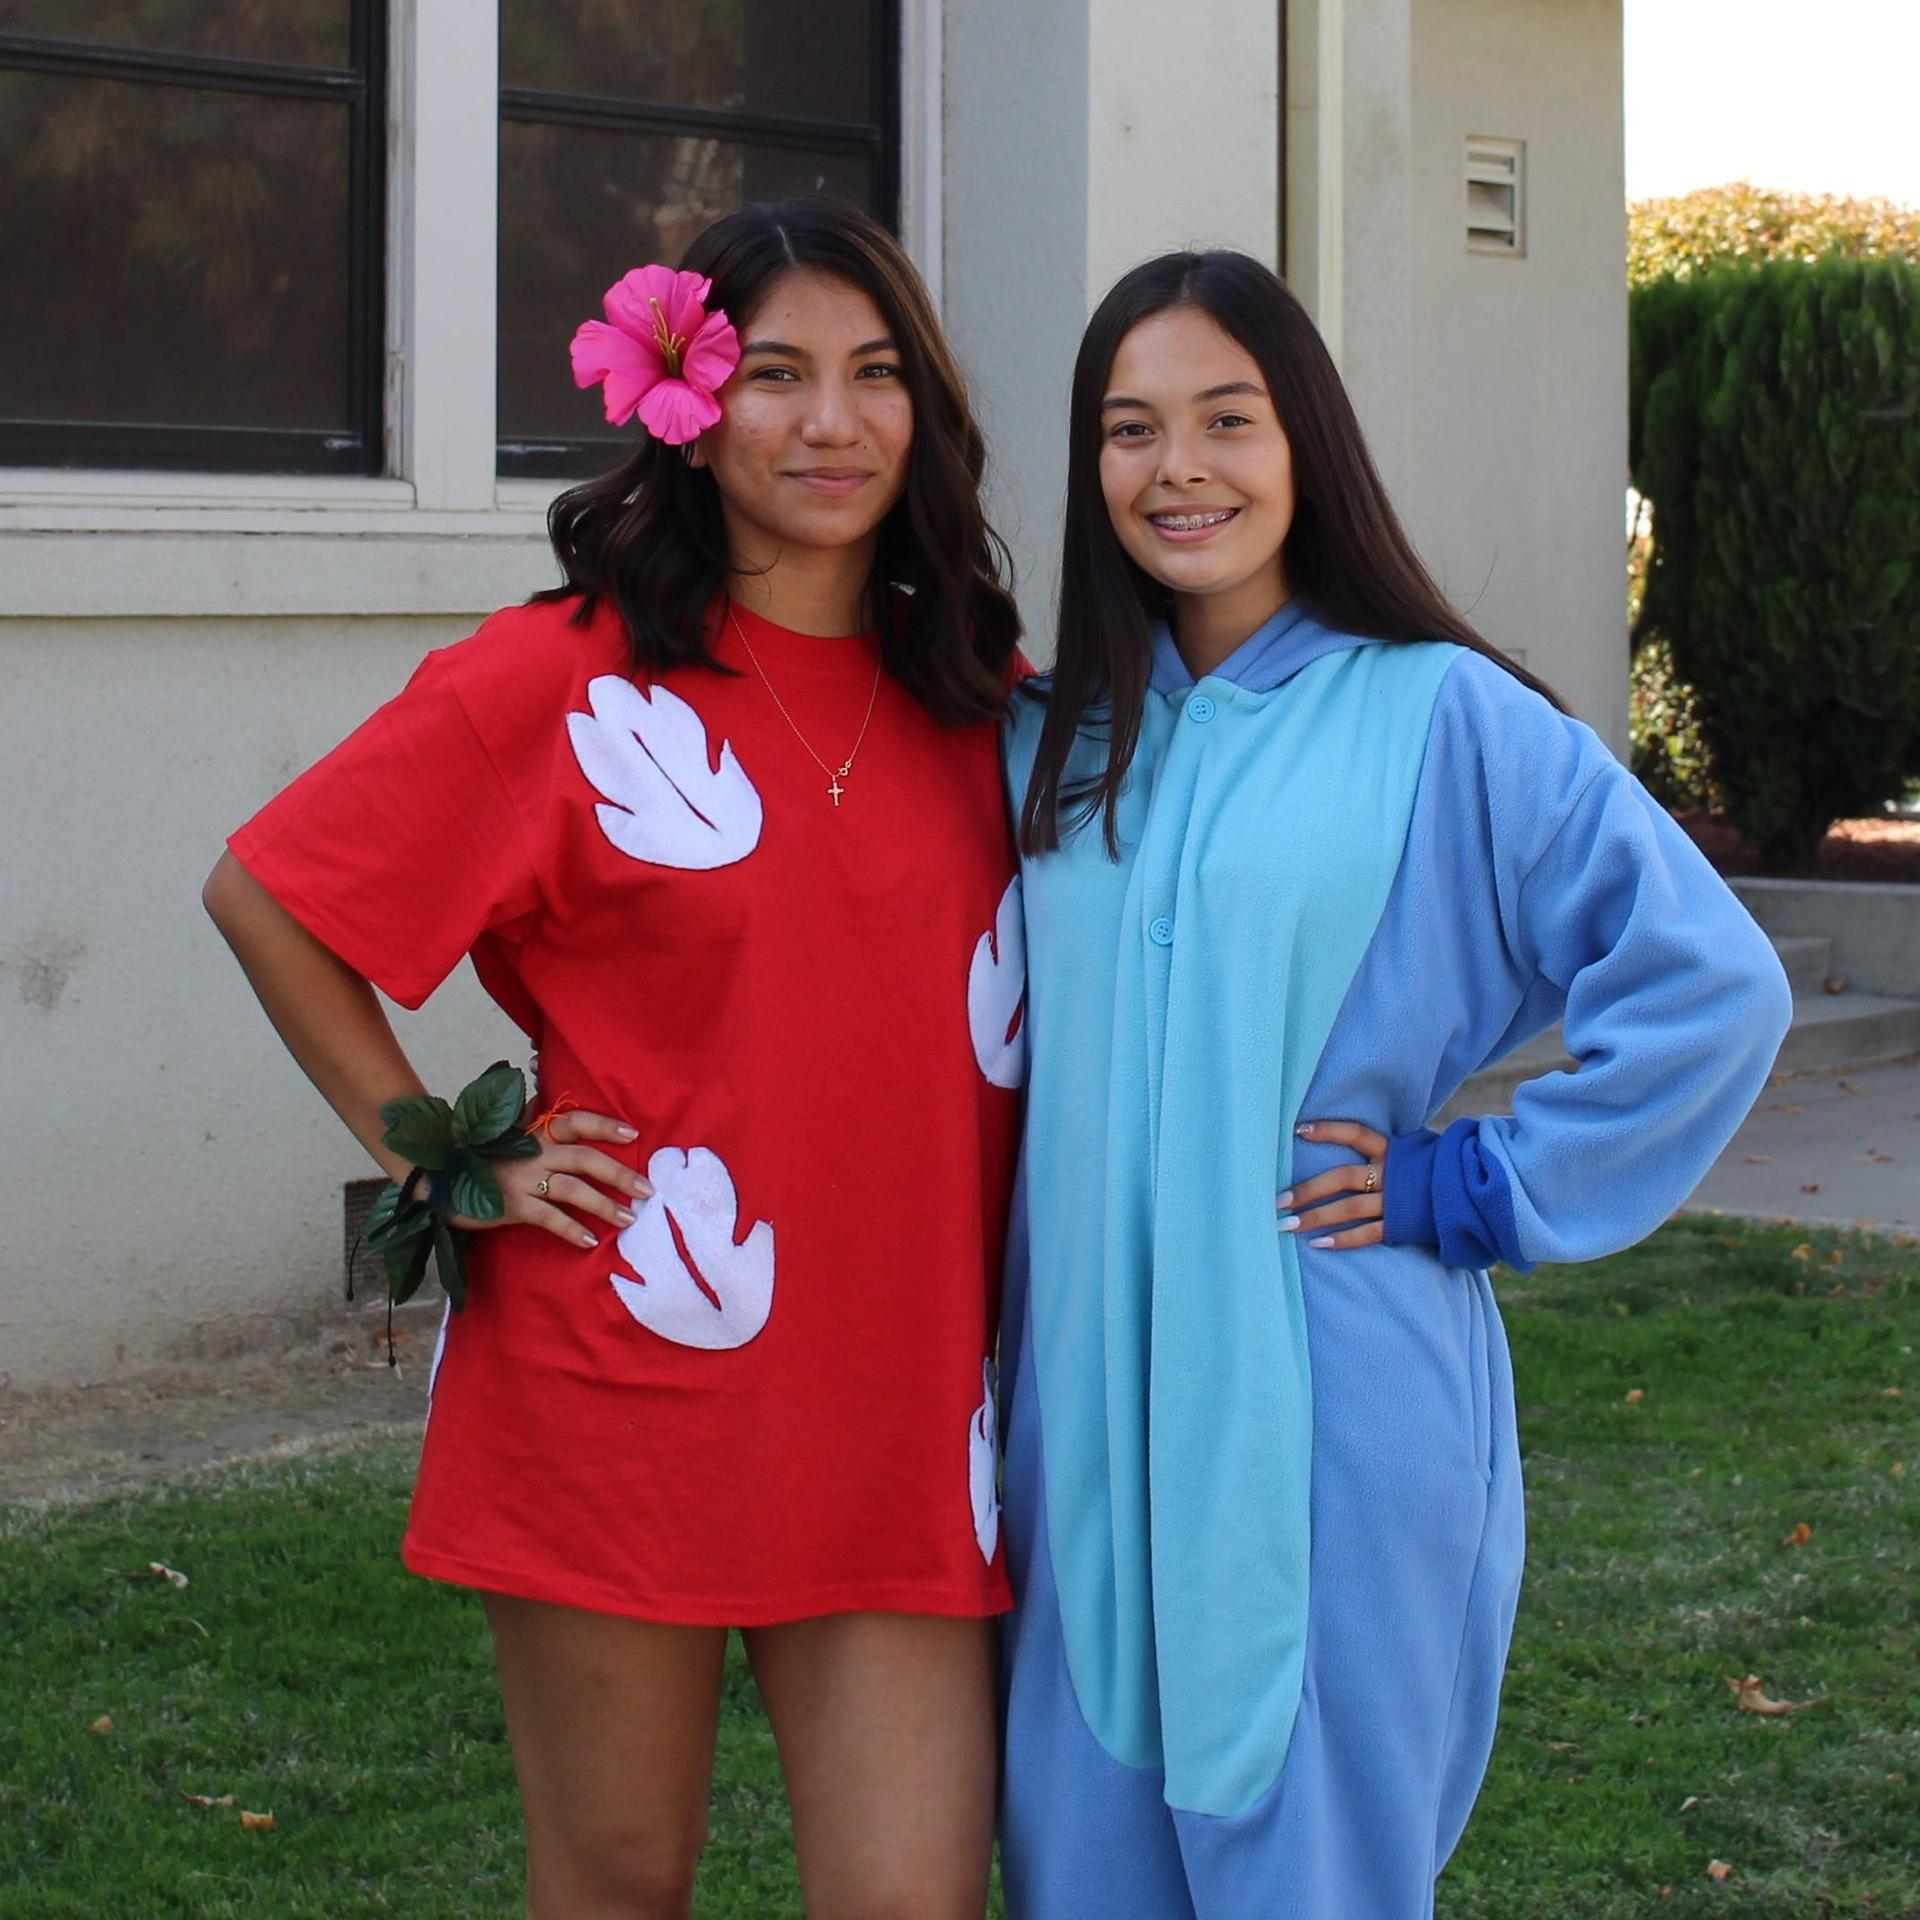 Emily Puente and Victoria Vera as Lilo and Stitch